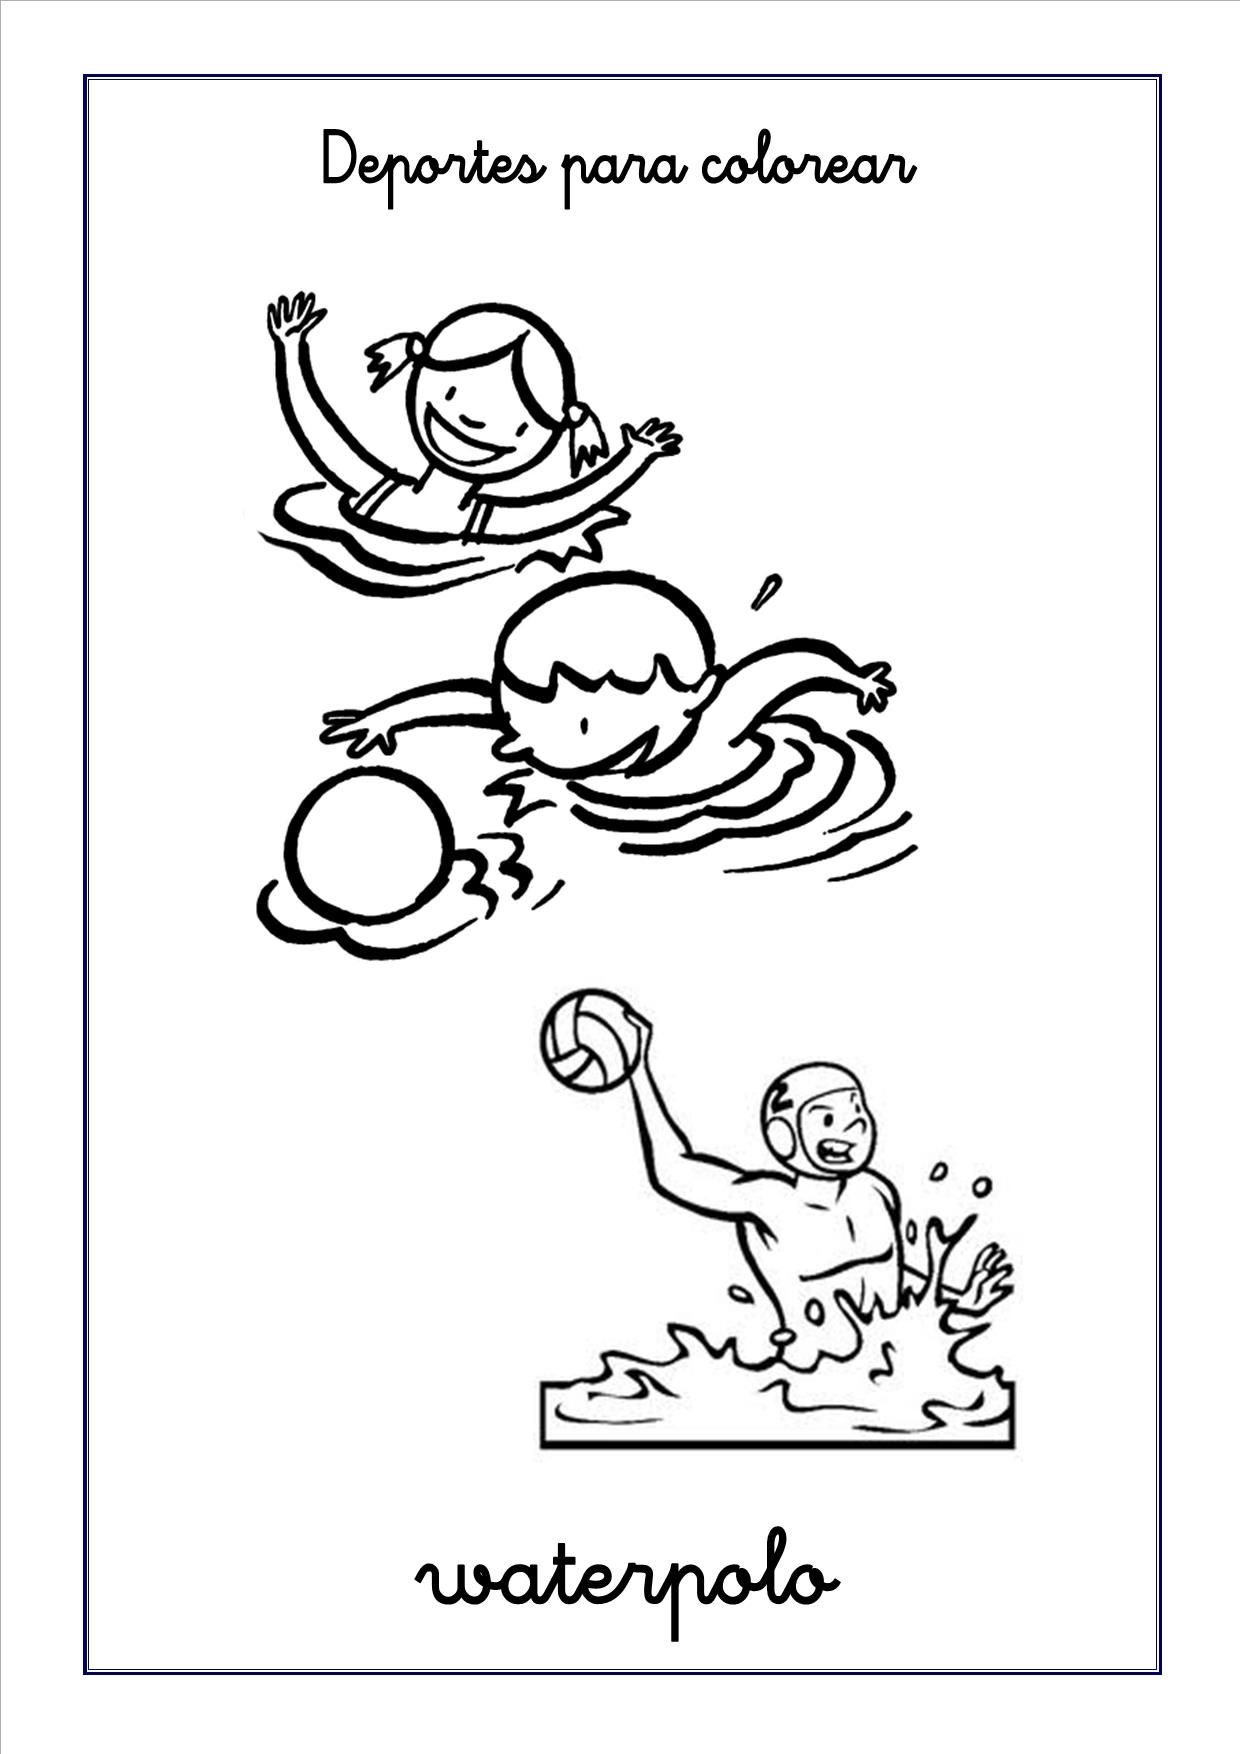 marco polo coloring page coloring page outline sports waterpolo